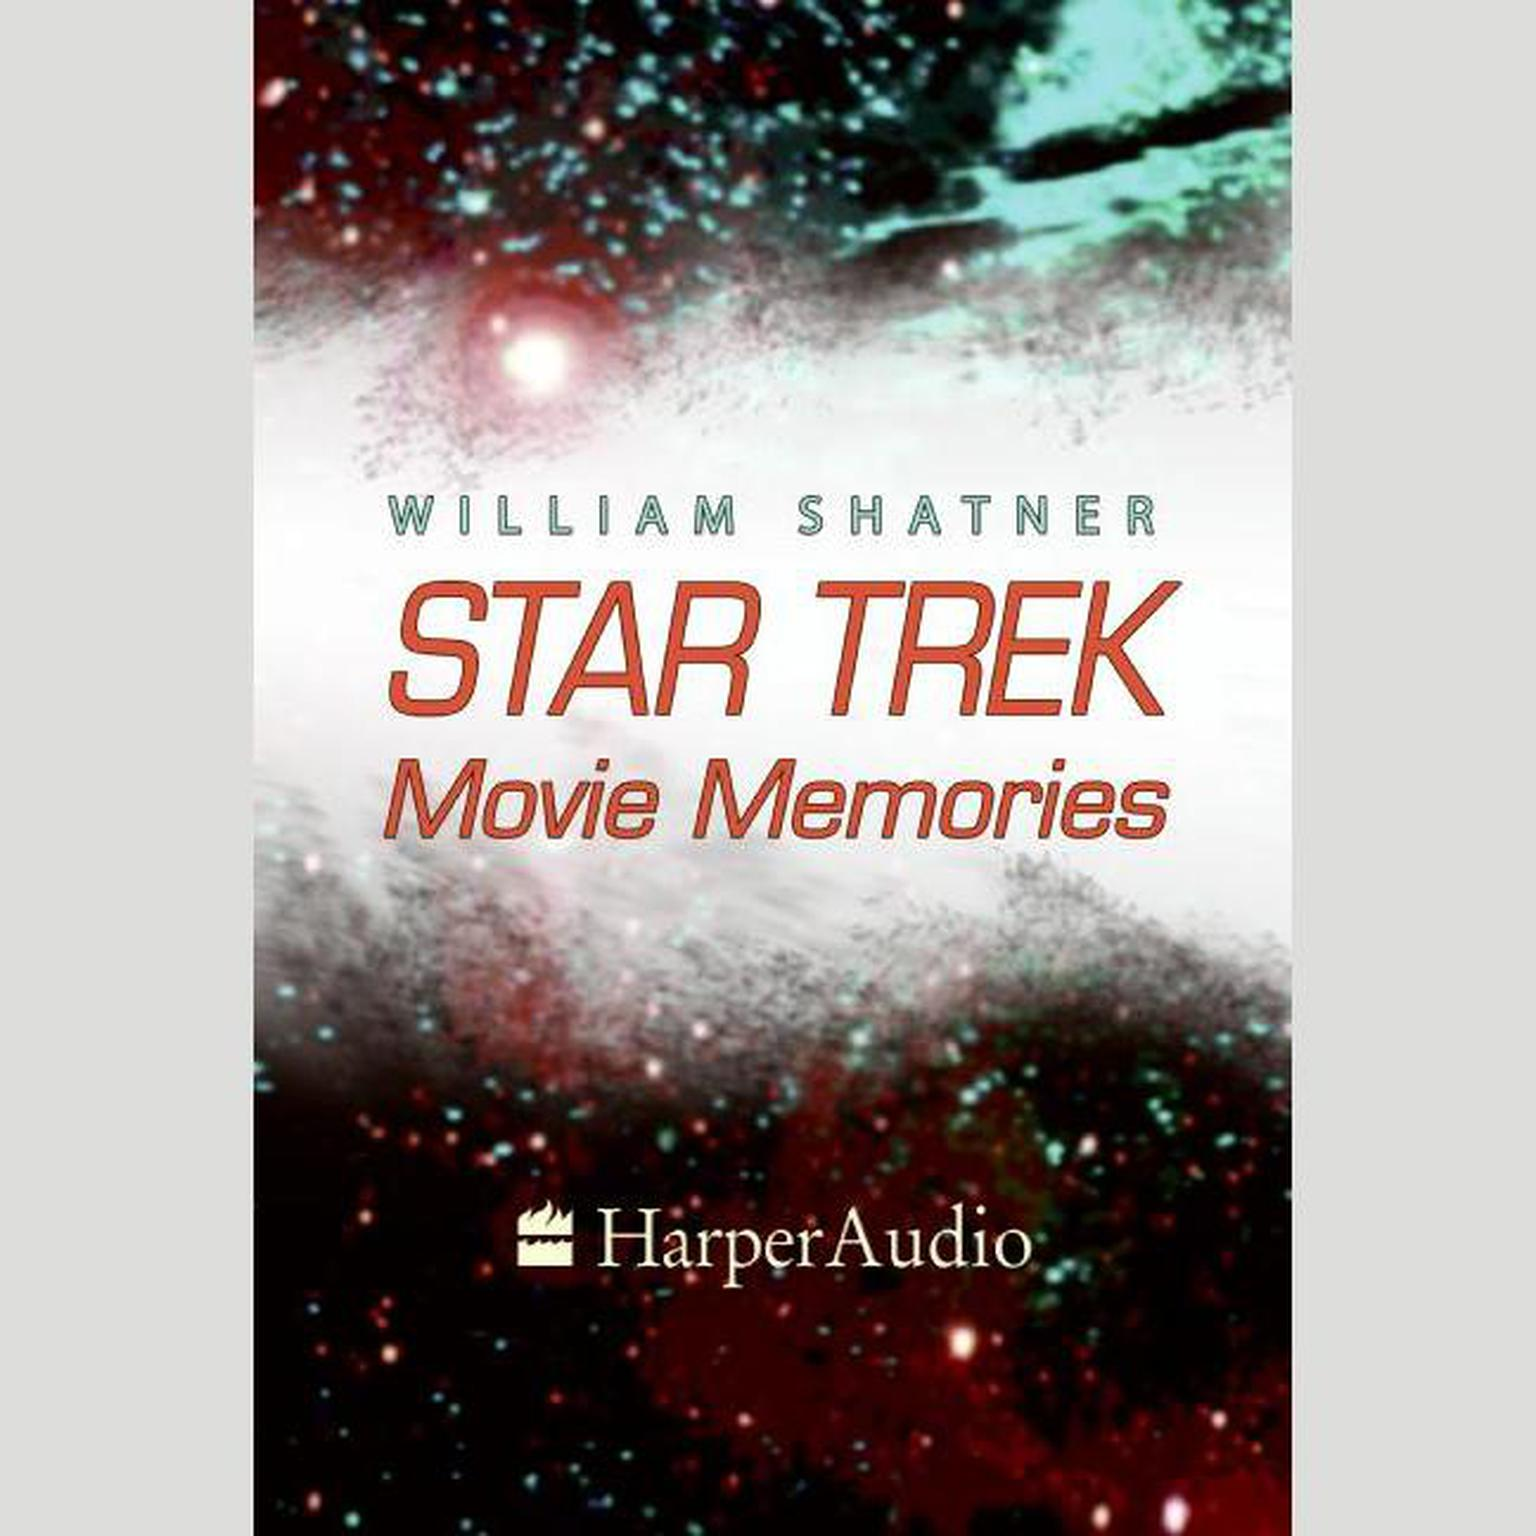 Printable STAR TREK MOVIE MEMORIES Audiobook Cover Art